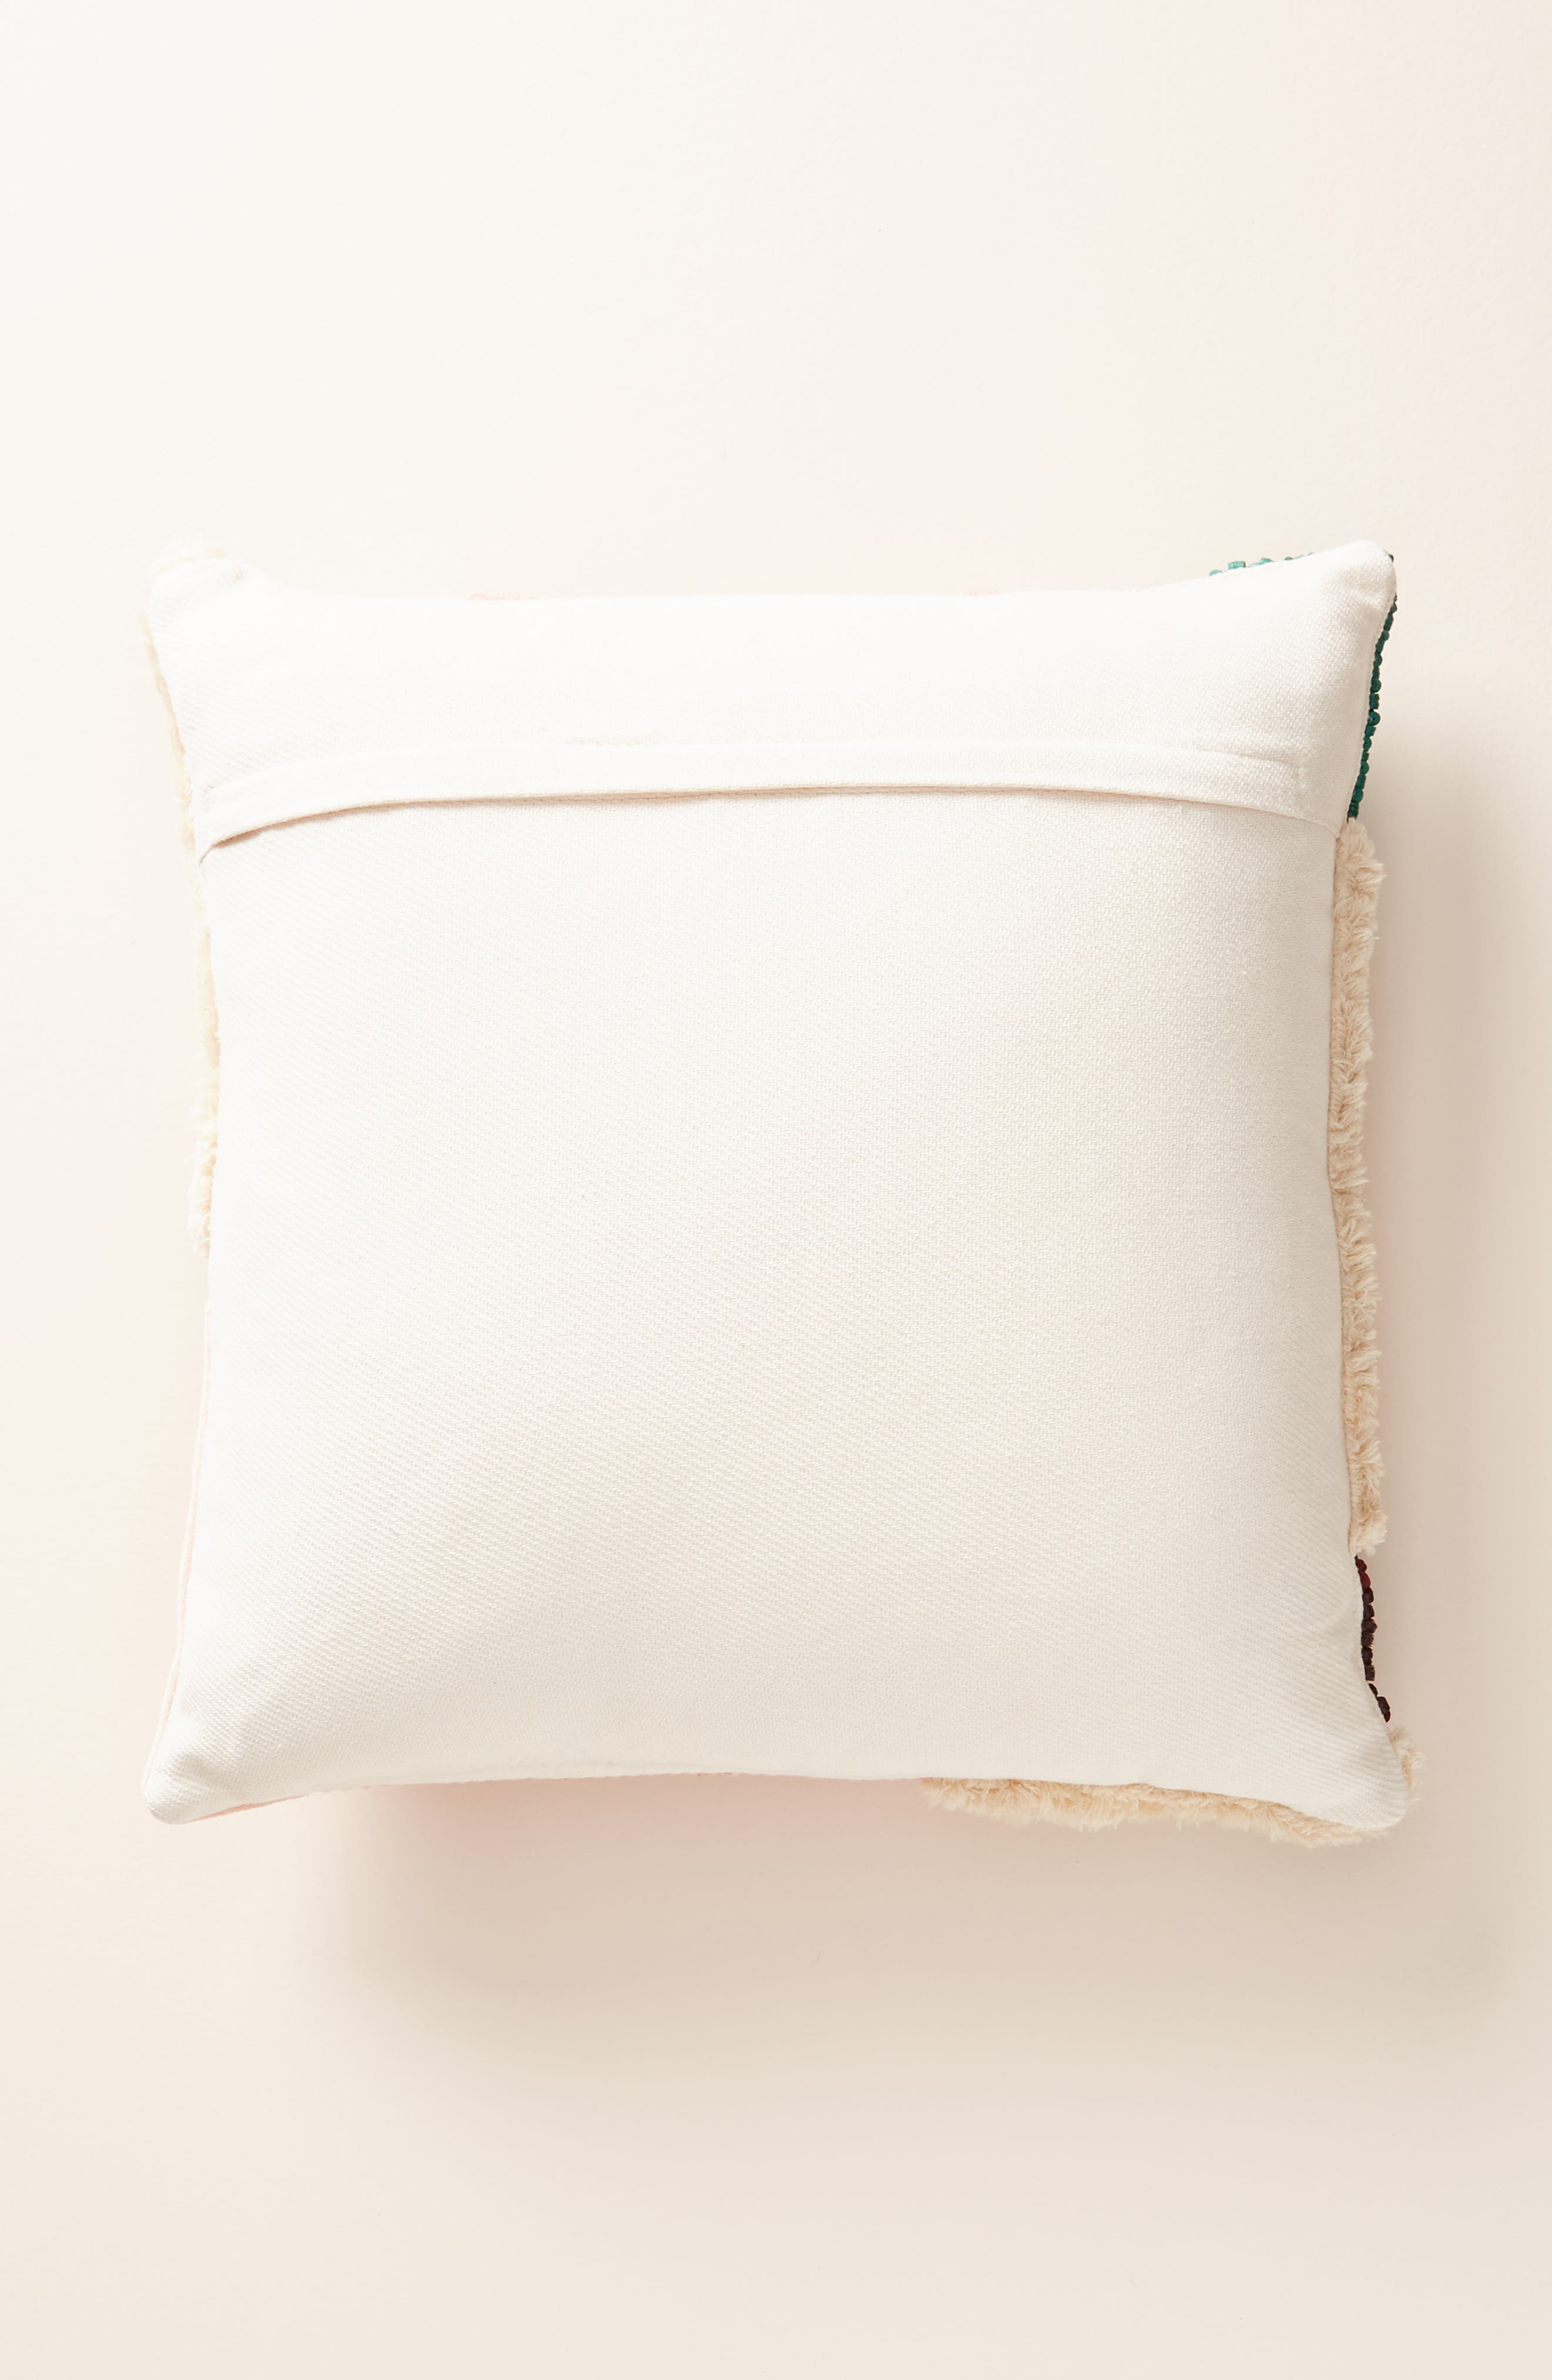 ANTHROPOLOGIE,                             Cleo Accent Pillow,                             Alternate thumbnail 2, color,                             650